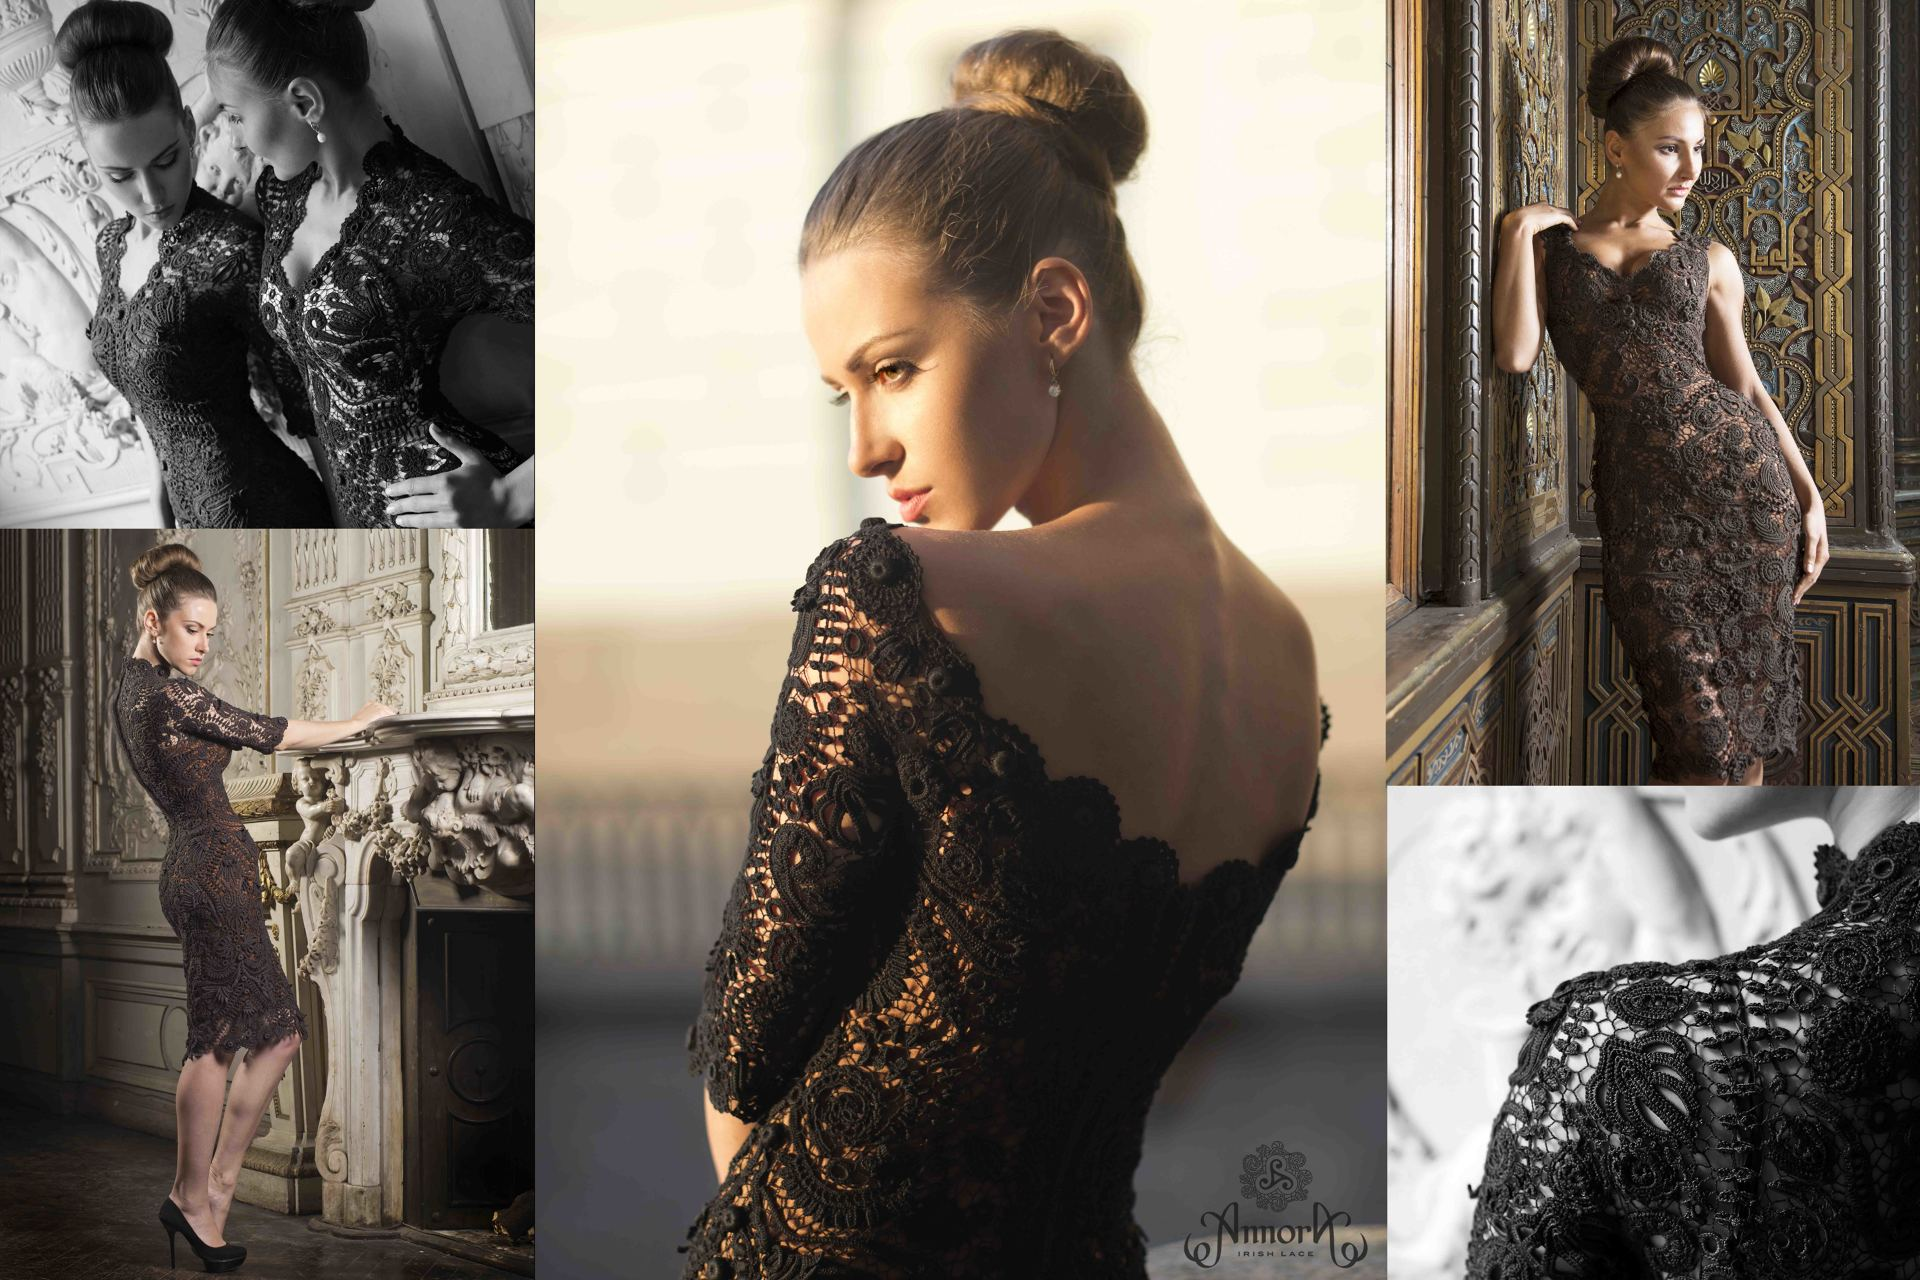 Annora Irish Lace collection: evening gown made of handcrafted Irish Lace